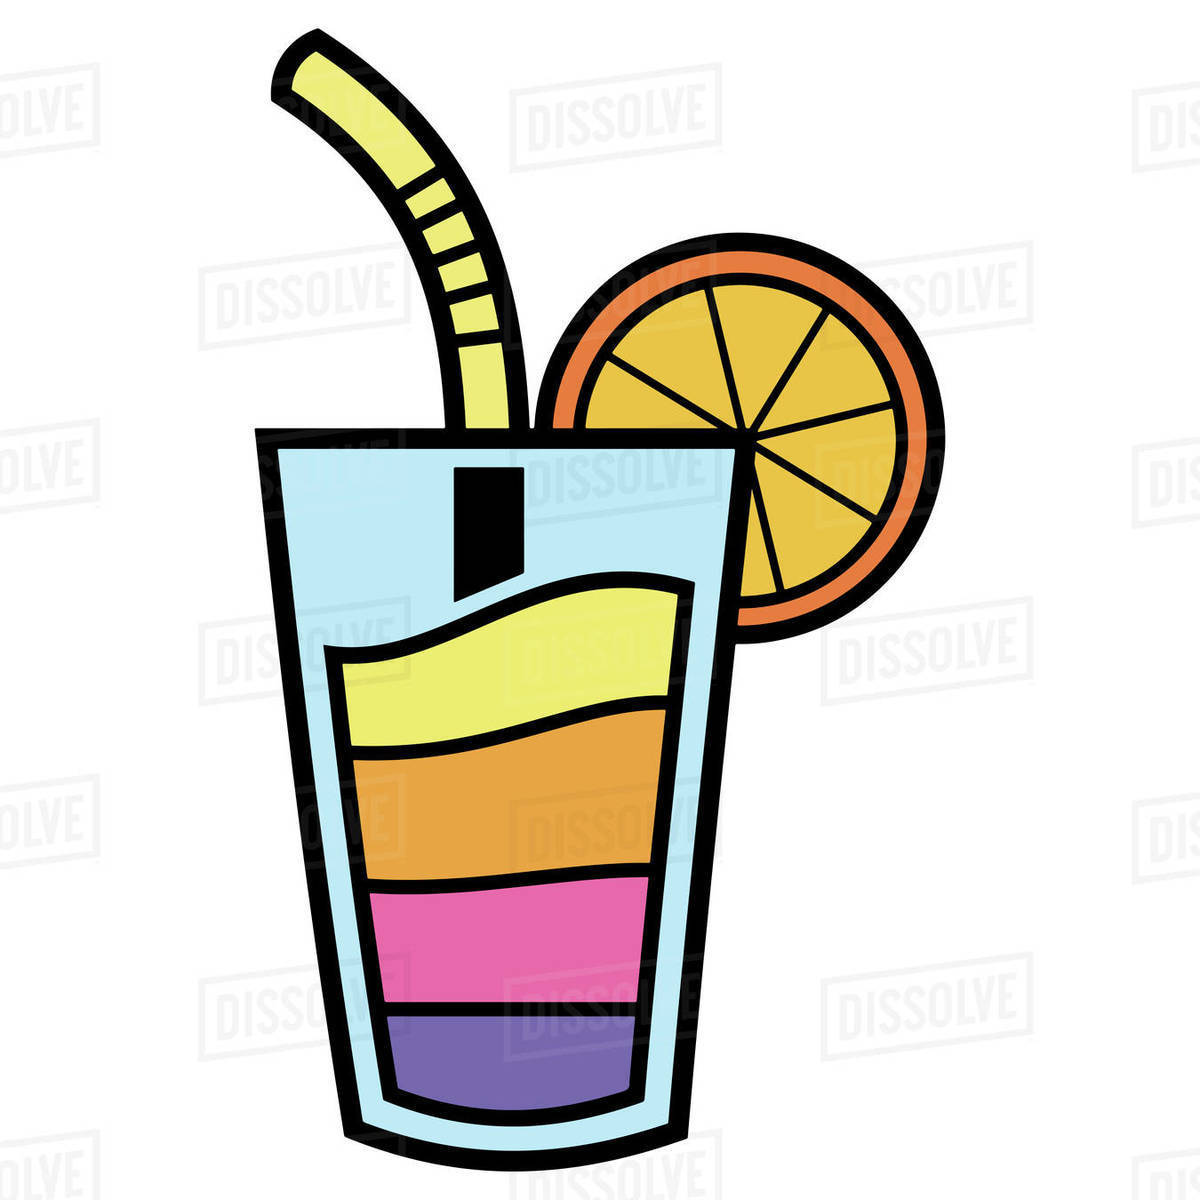 Illustration of cocktail glass with straw and lemon slice isolated on white background Royalty-free stock photo